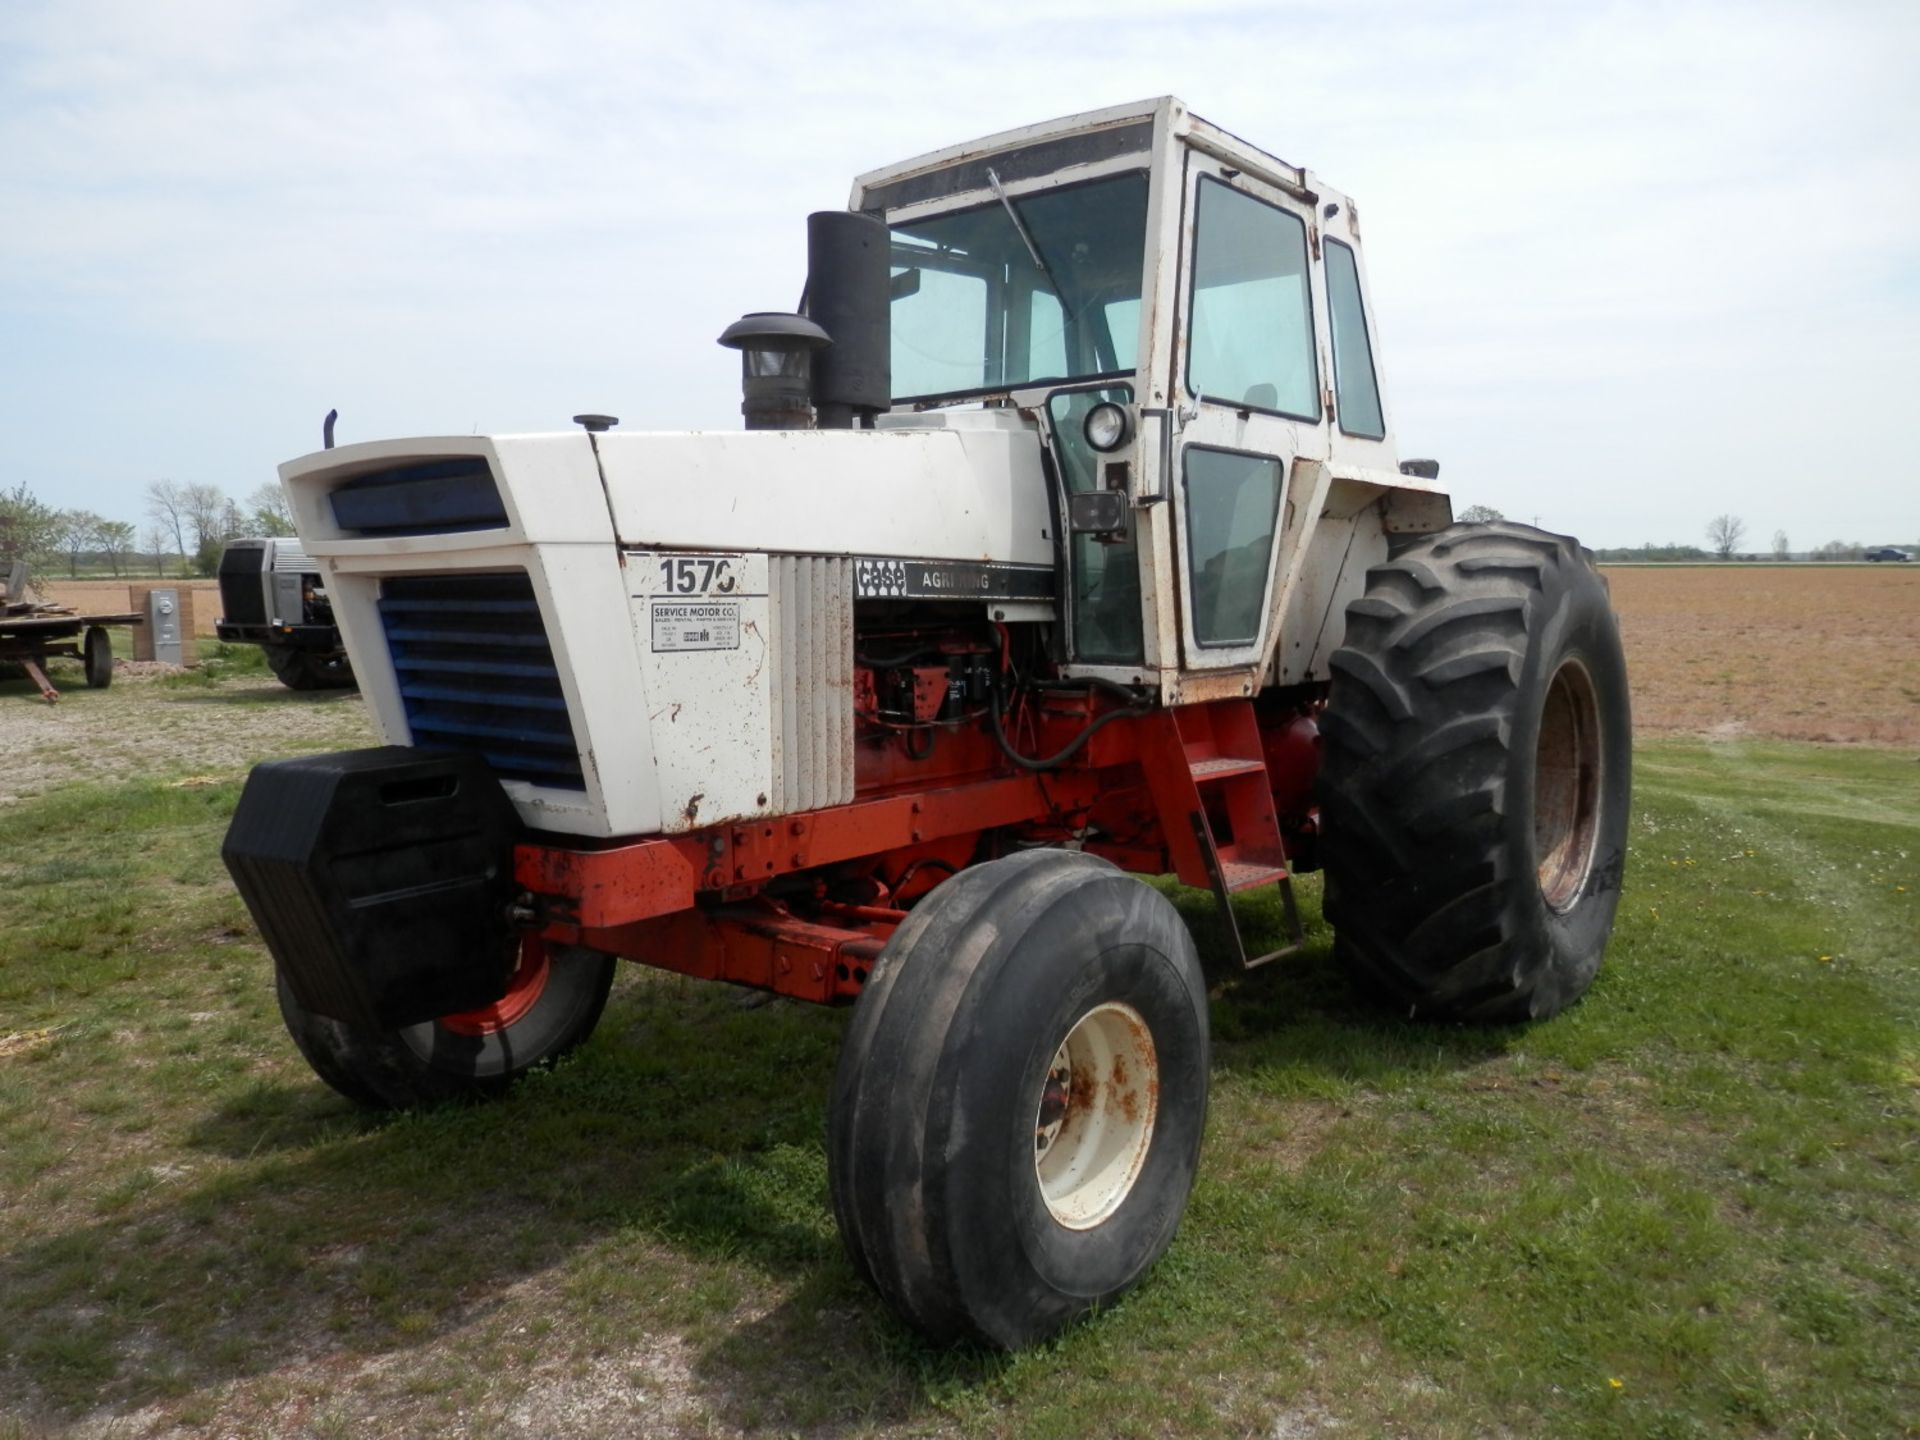 CASE 1570 AGRI KING TRACTOR - Image 5 of 8